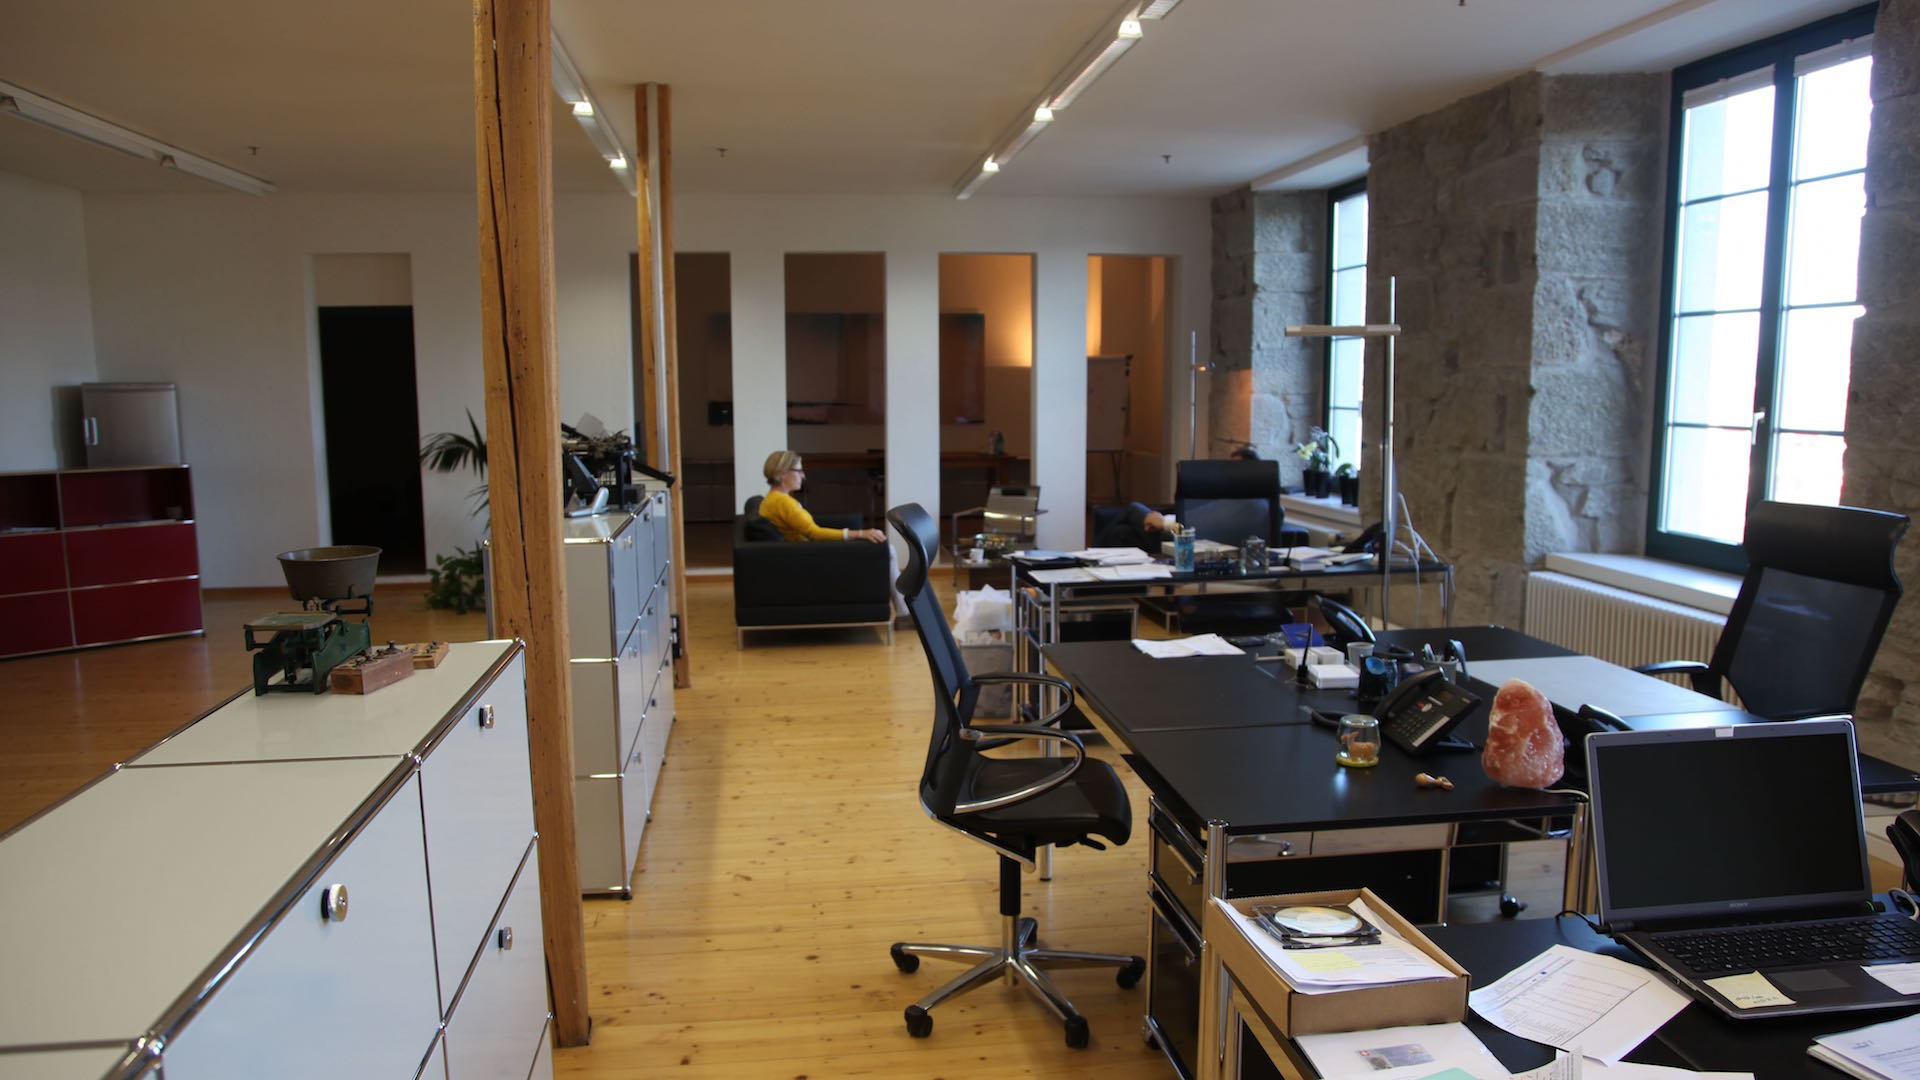 Shared-coworking-office-Haldenstrasse-Baar-Zug-Switzerland-5